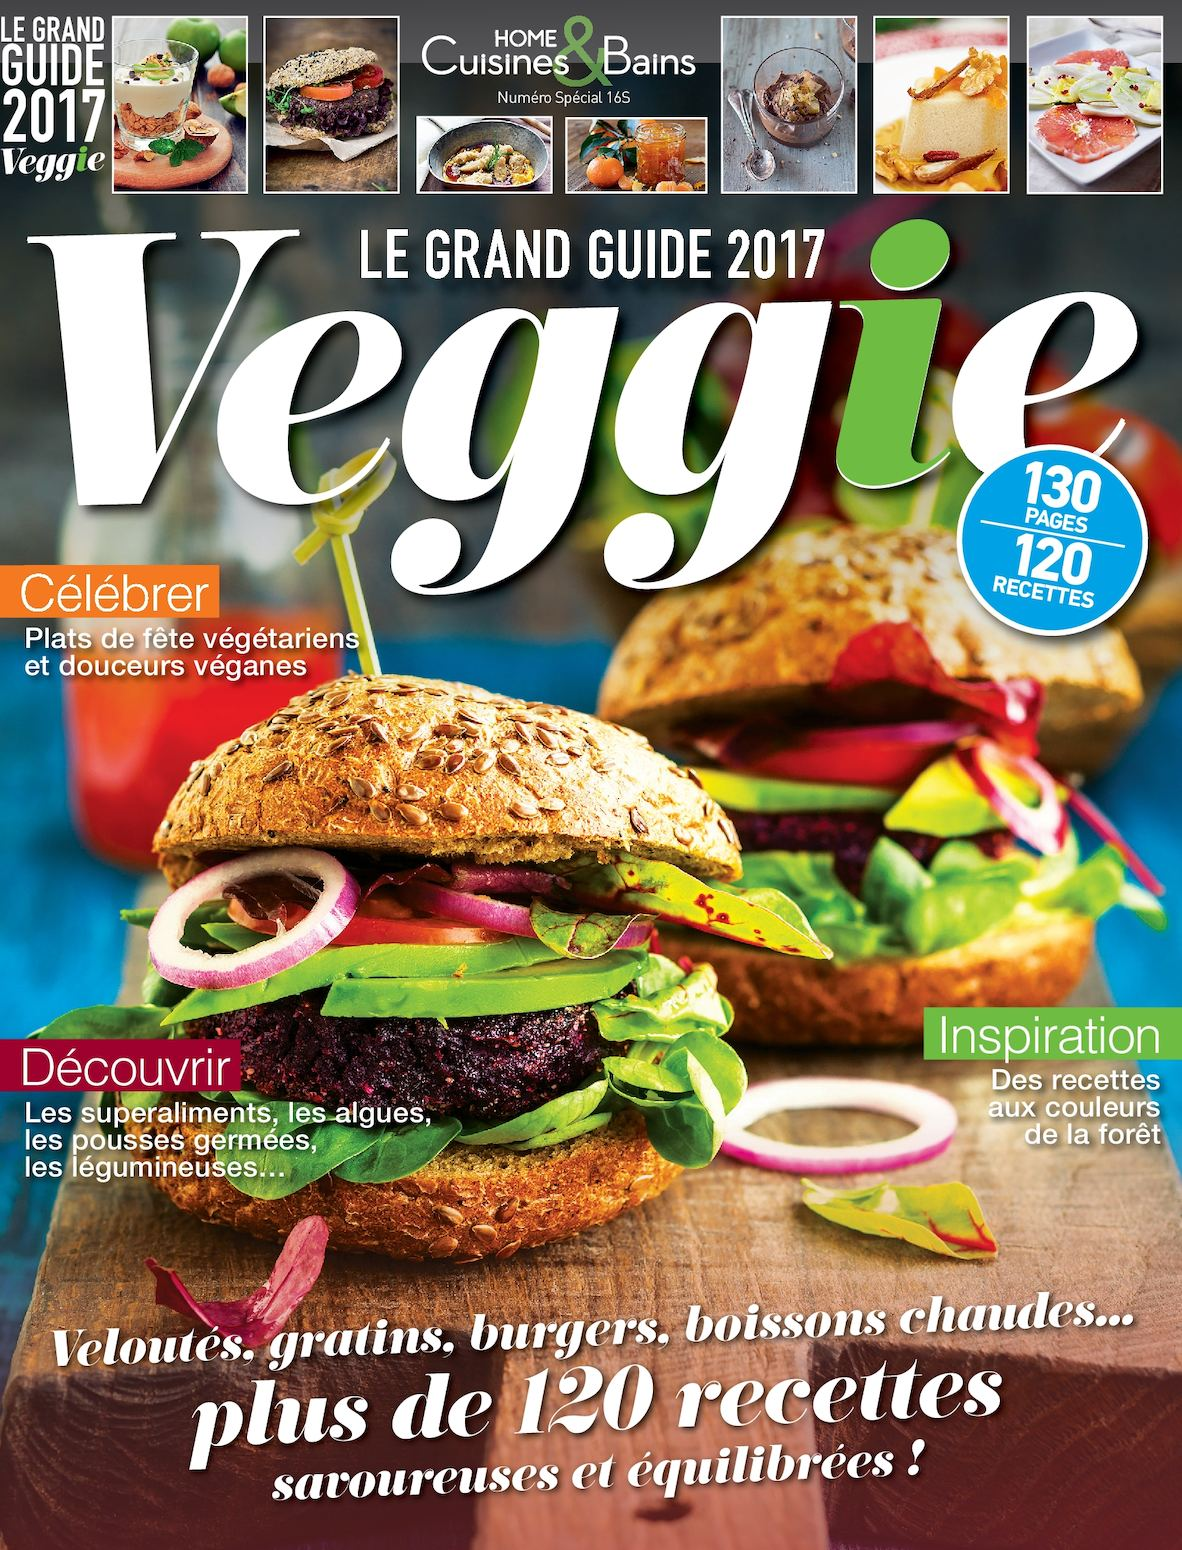 Le grand guide 2017 Veggie